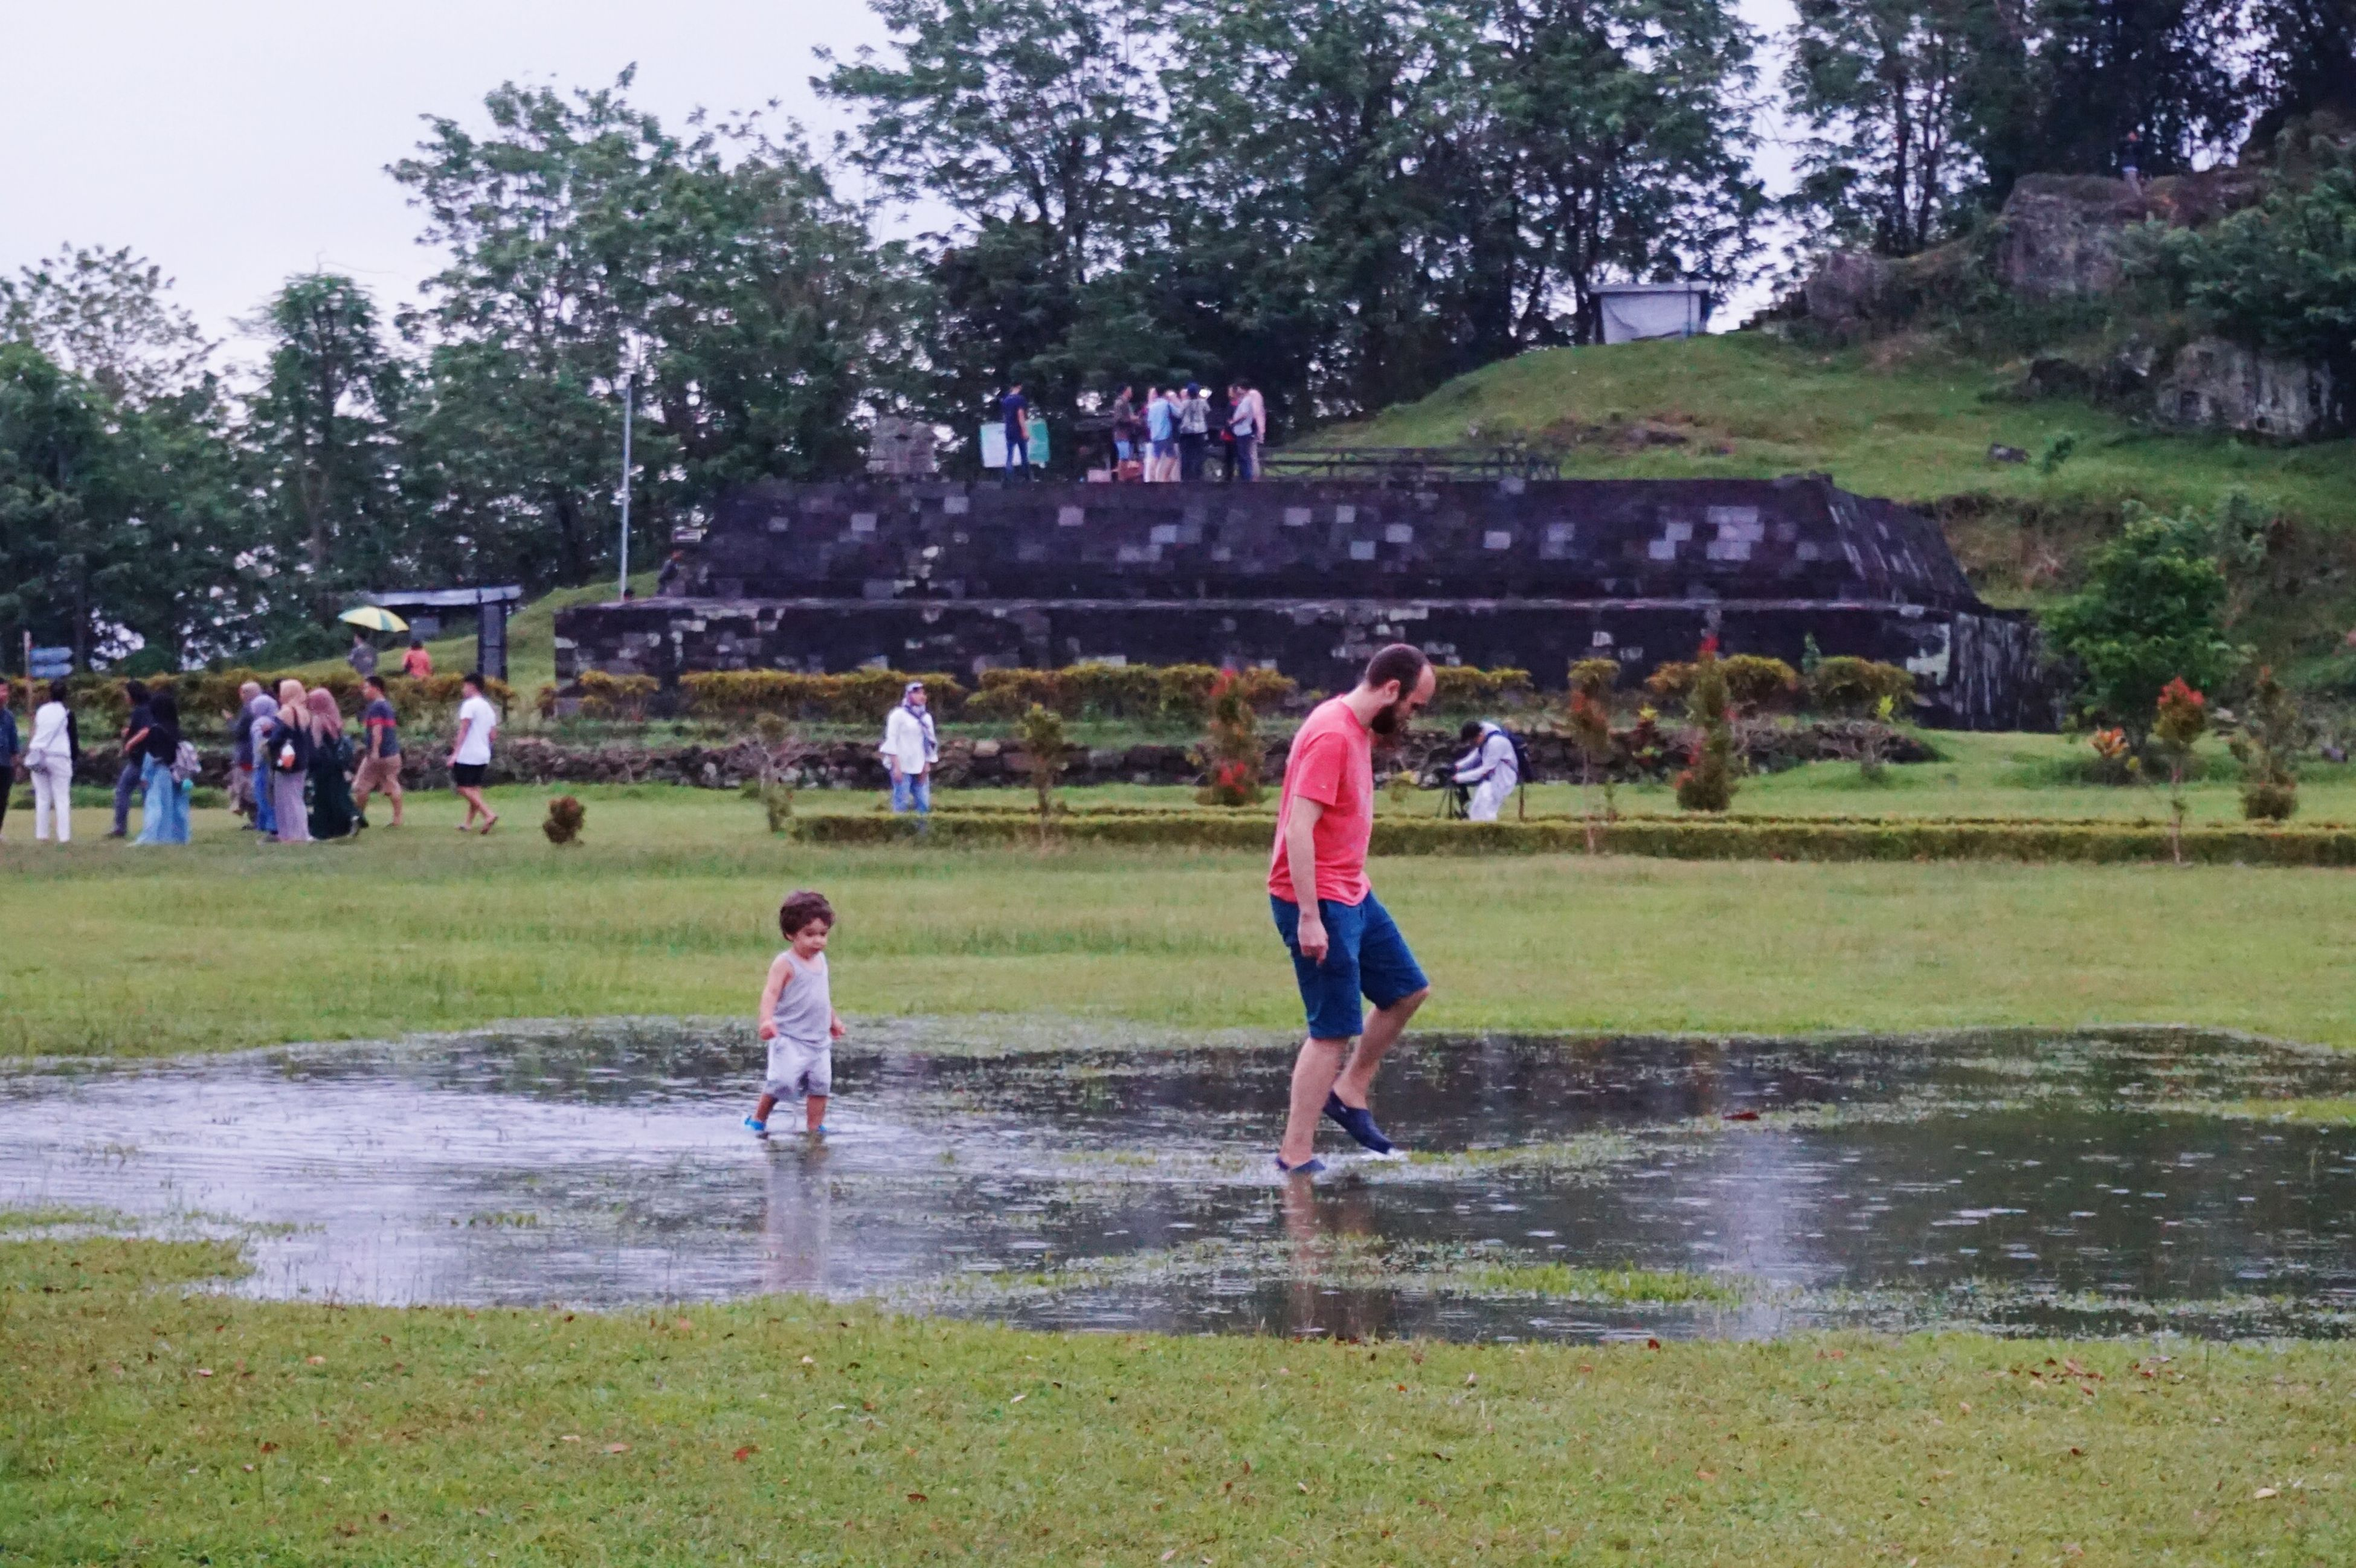 water, playing, grass, fun, leisure activity, boys, childhood, spraying, tree, enjoyment, full length, outdoors, real people, day, lifestyles, wet, park - man made space, girls, nature, motion, togetherness, large group of people, men, child, sky, people, adult